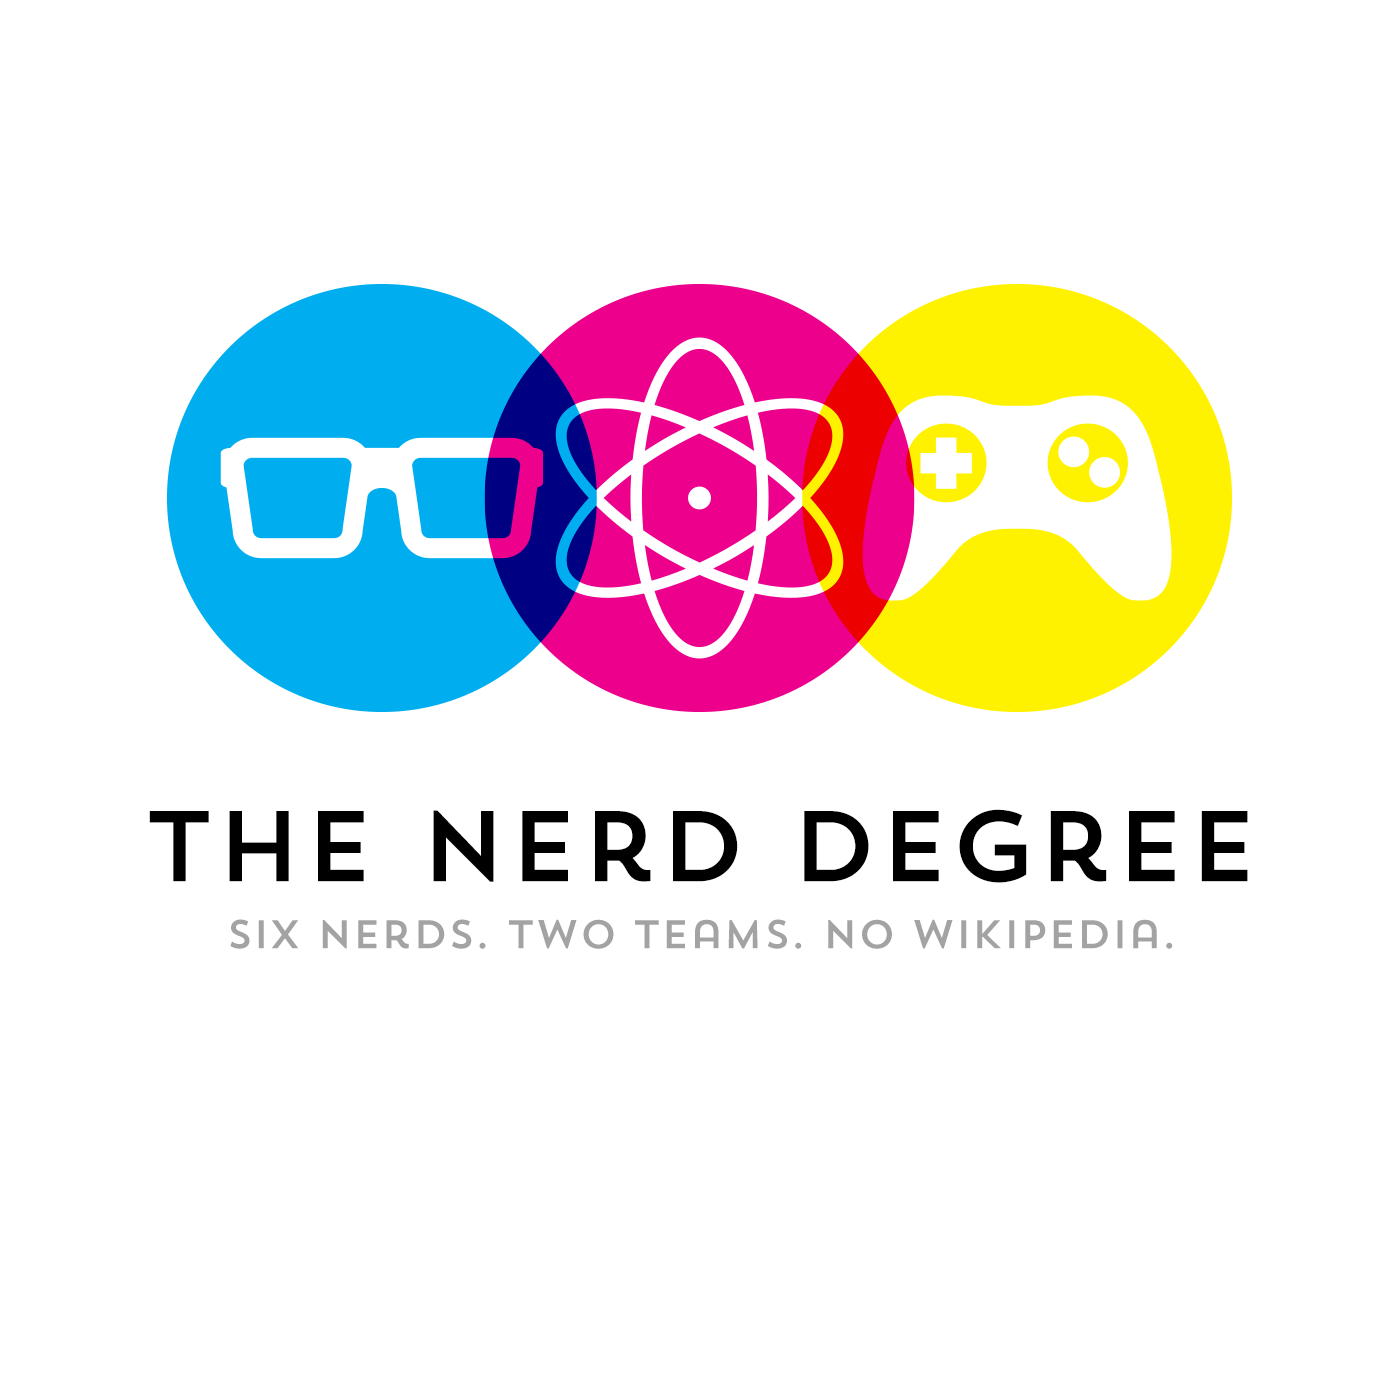 The Nerd Degree